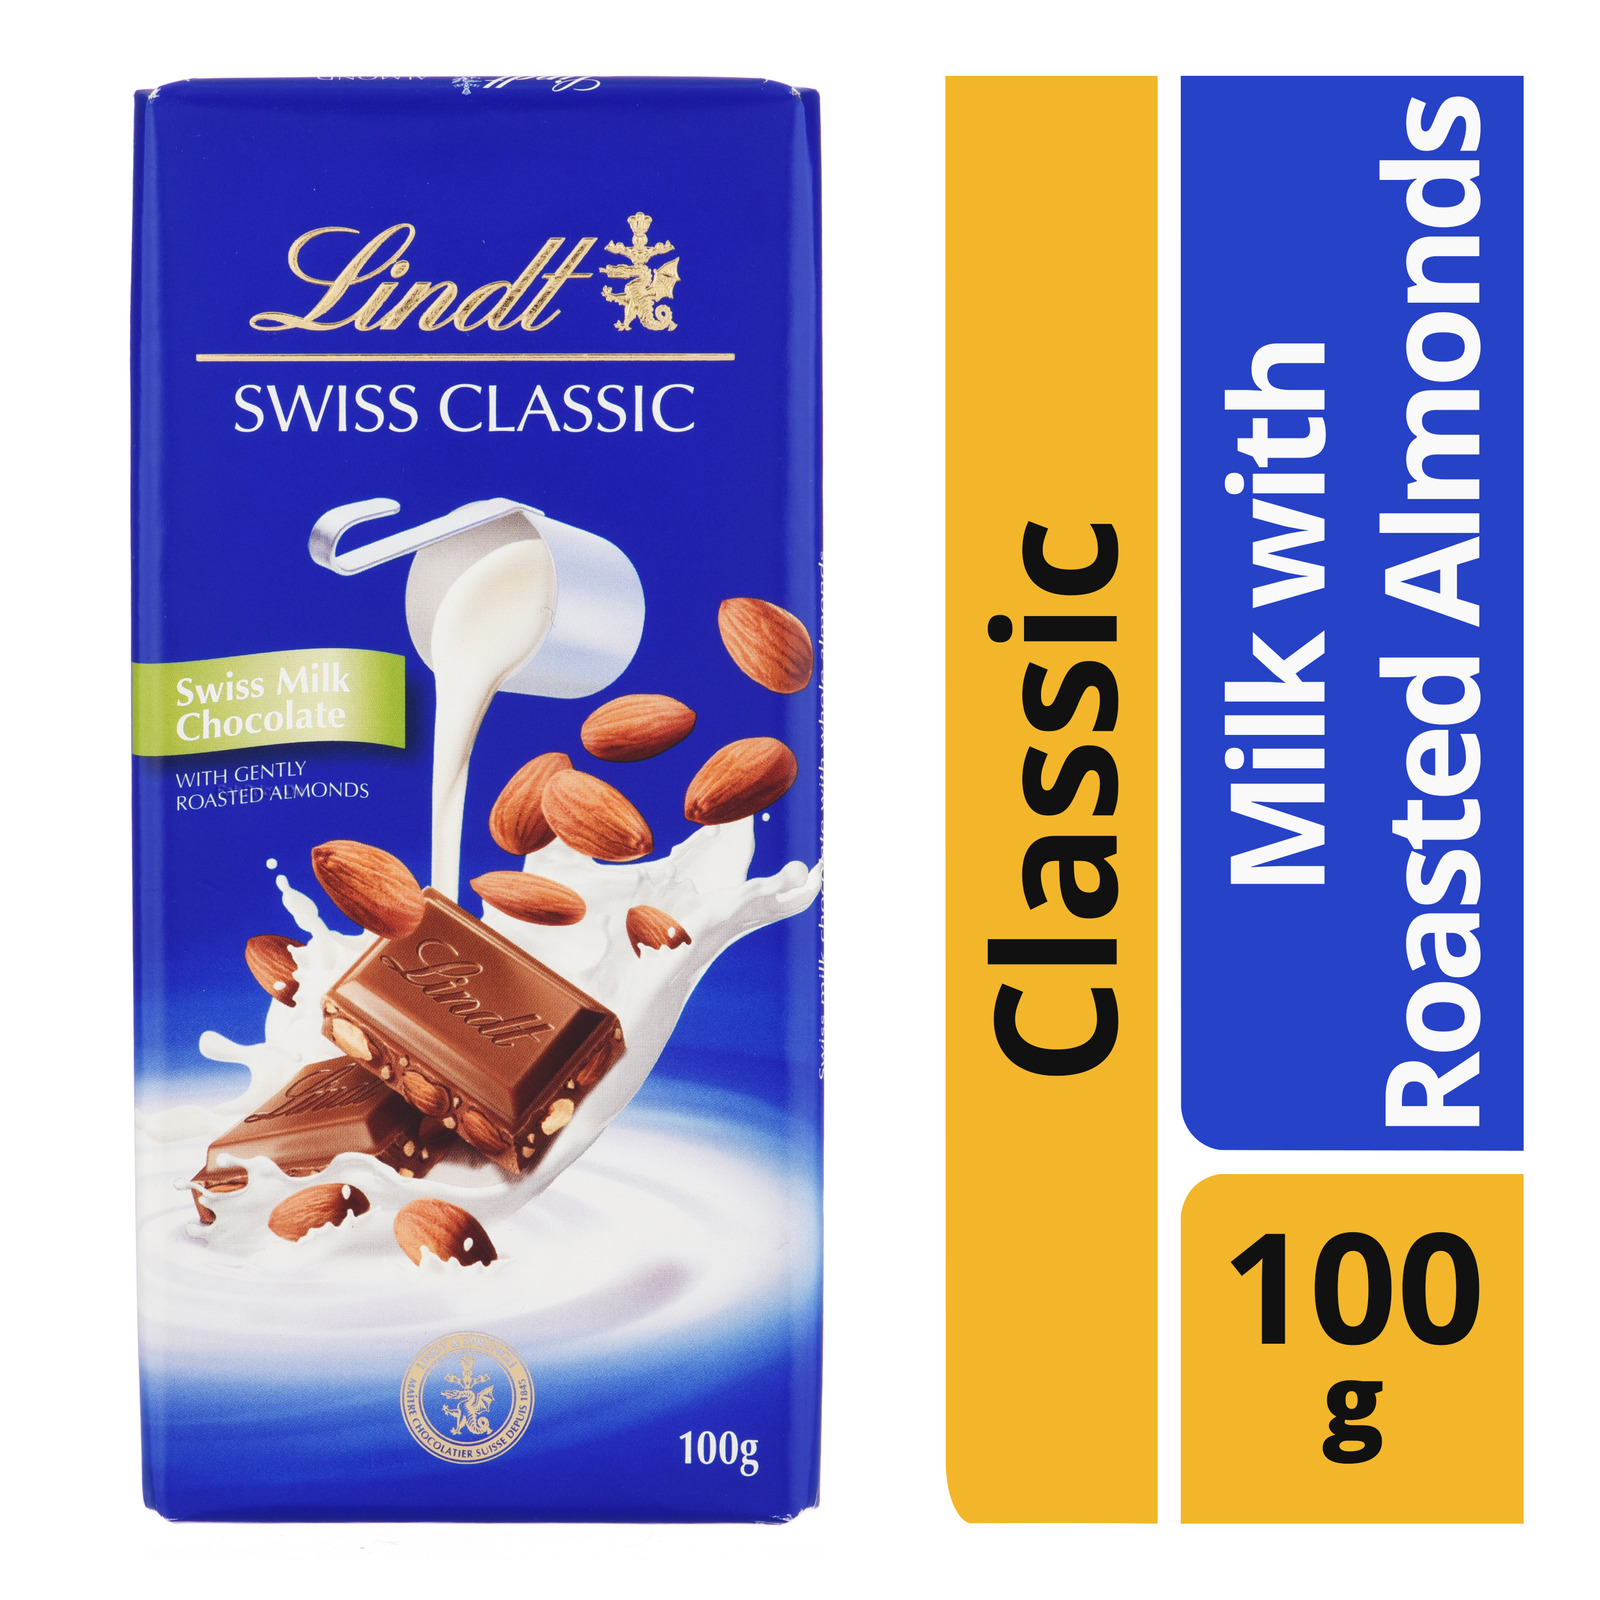 Lindt Swiss Classic Chocolate Bar - Milk with Roasted Almonds